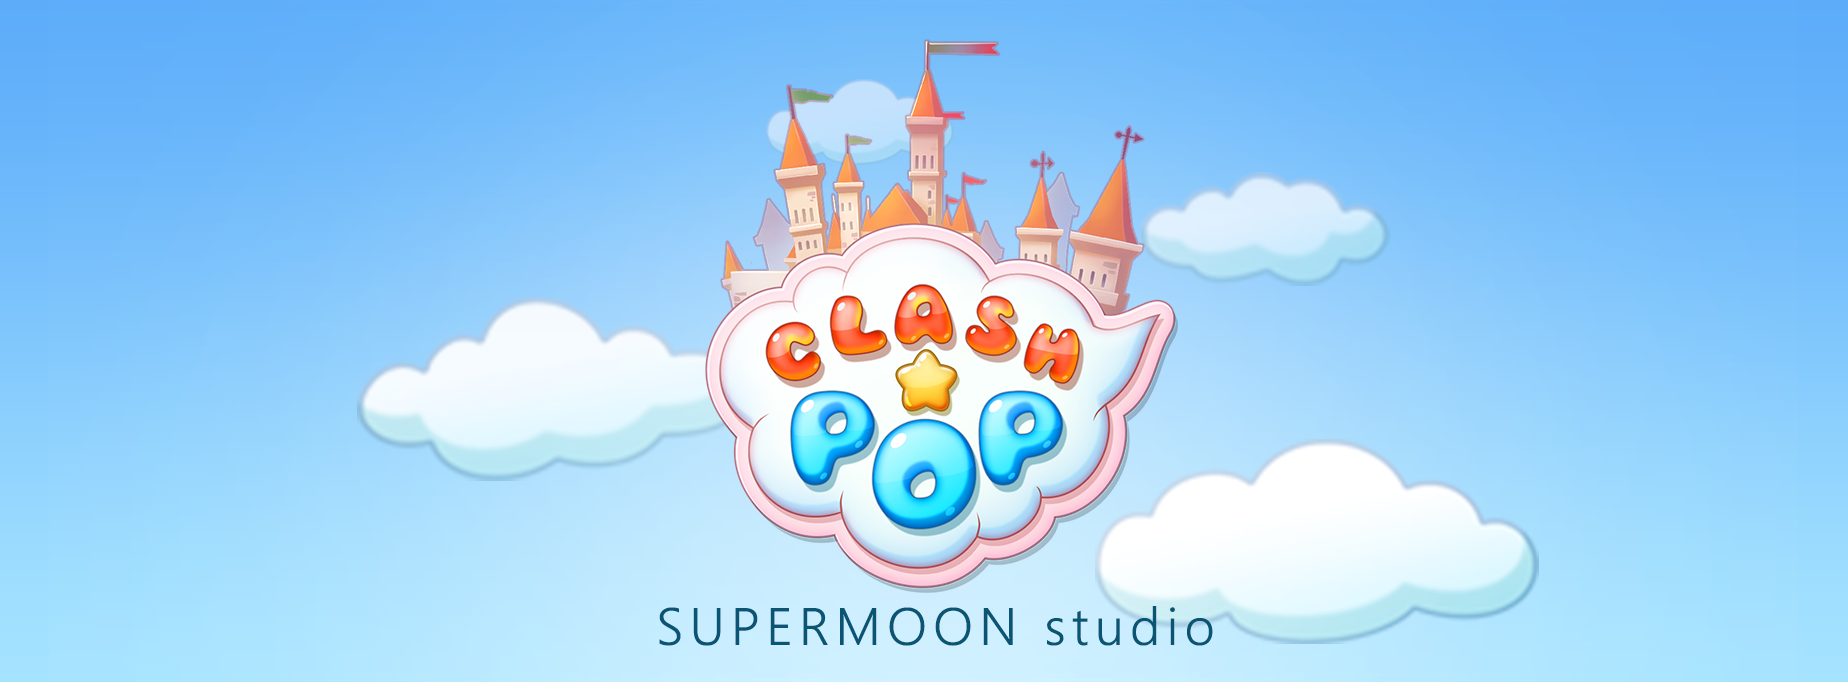 [MWU Korea '18] Clash Pop / Supermoon Studio